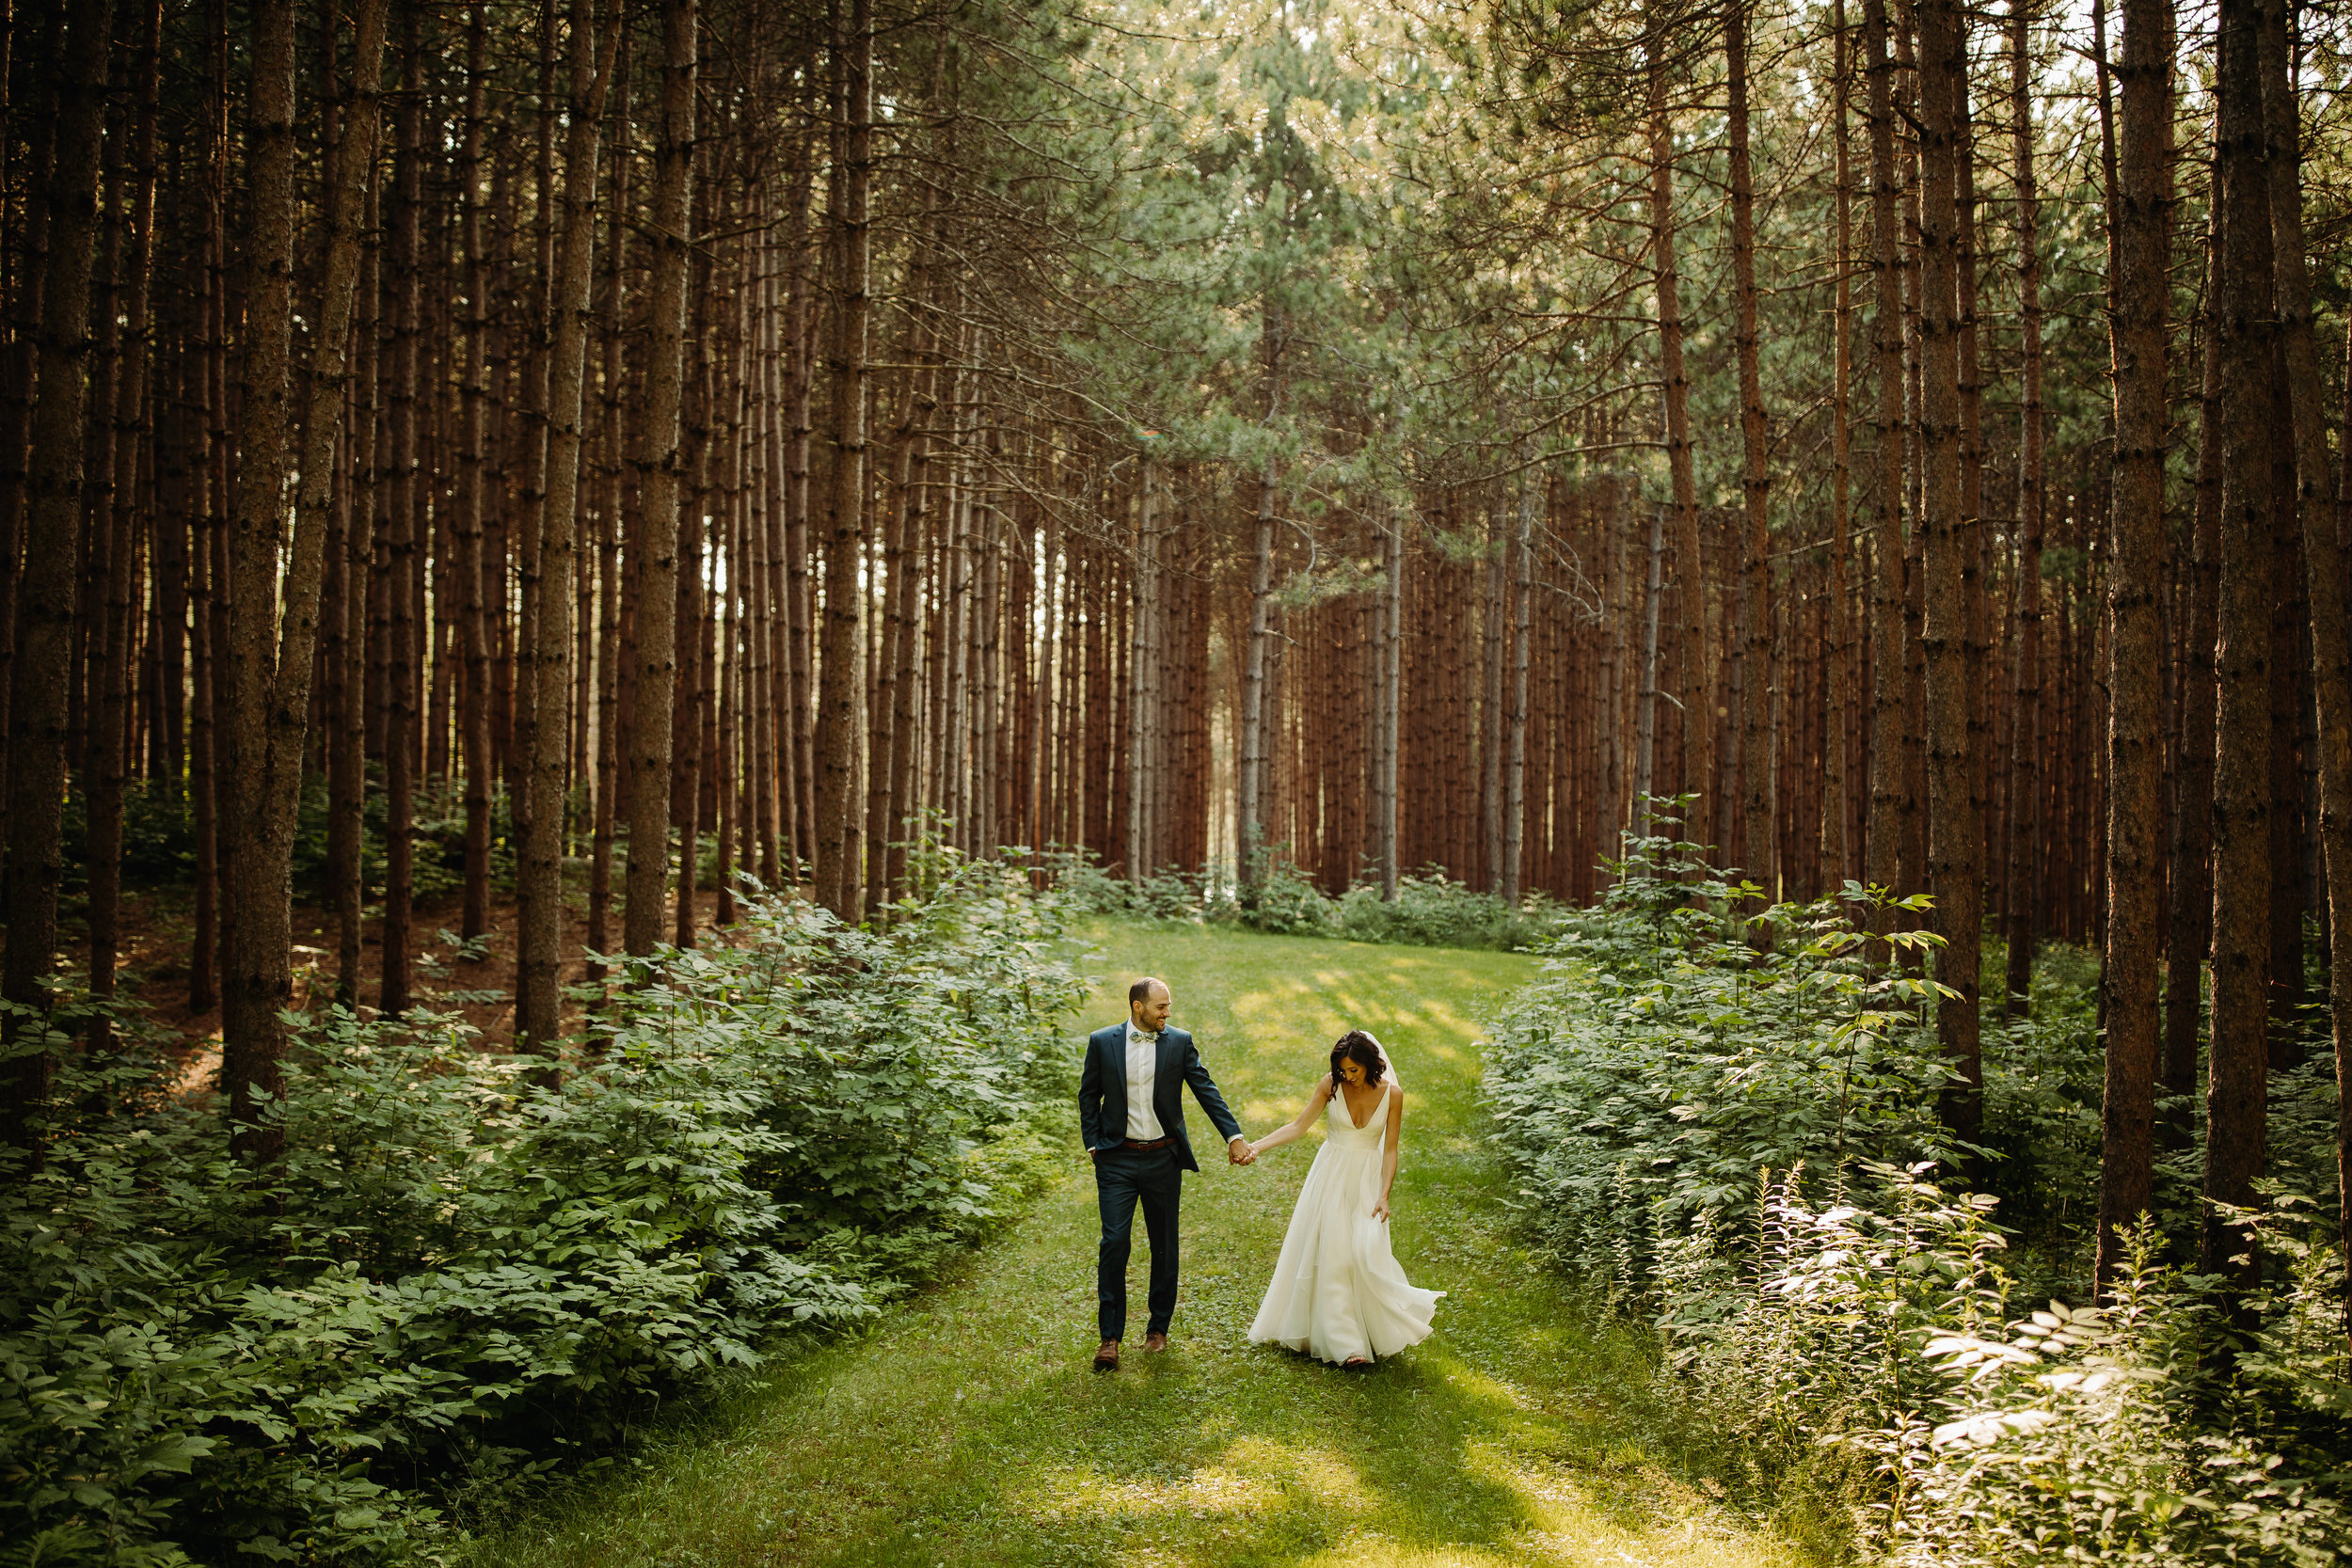 Understated Greenery in July - Real Wedding - Summer